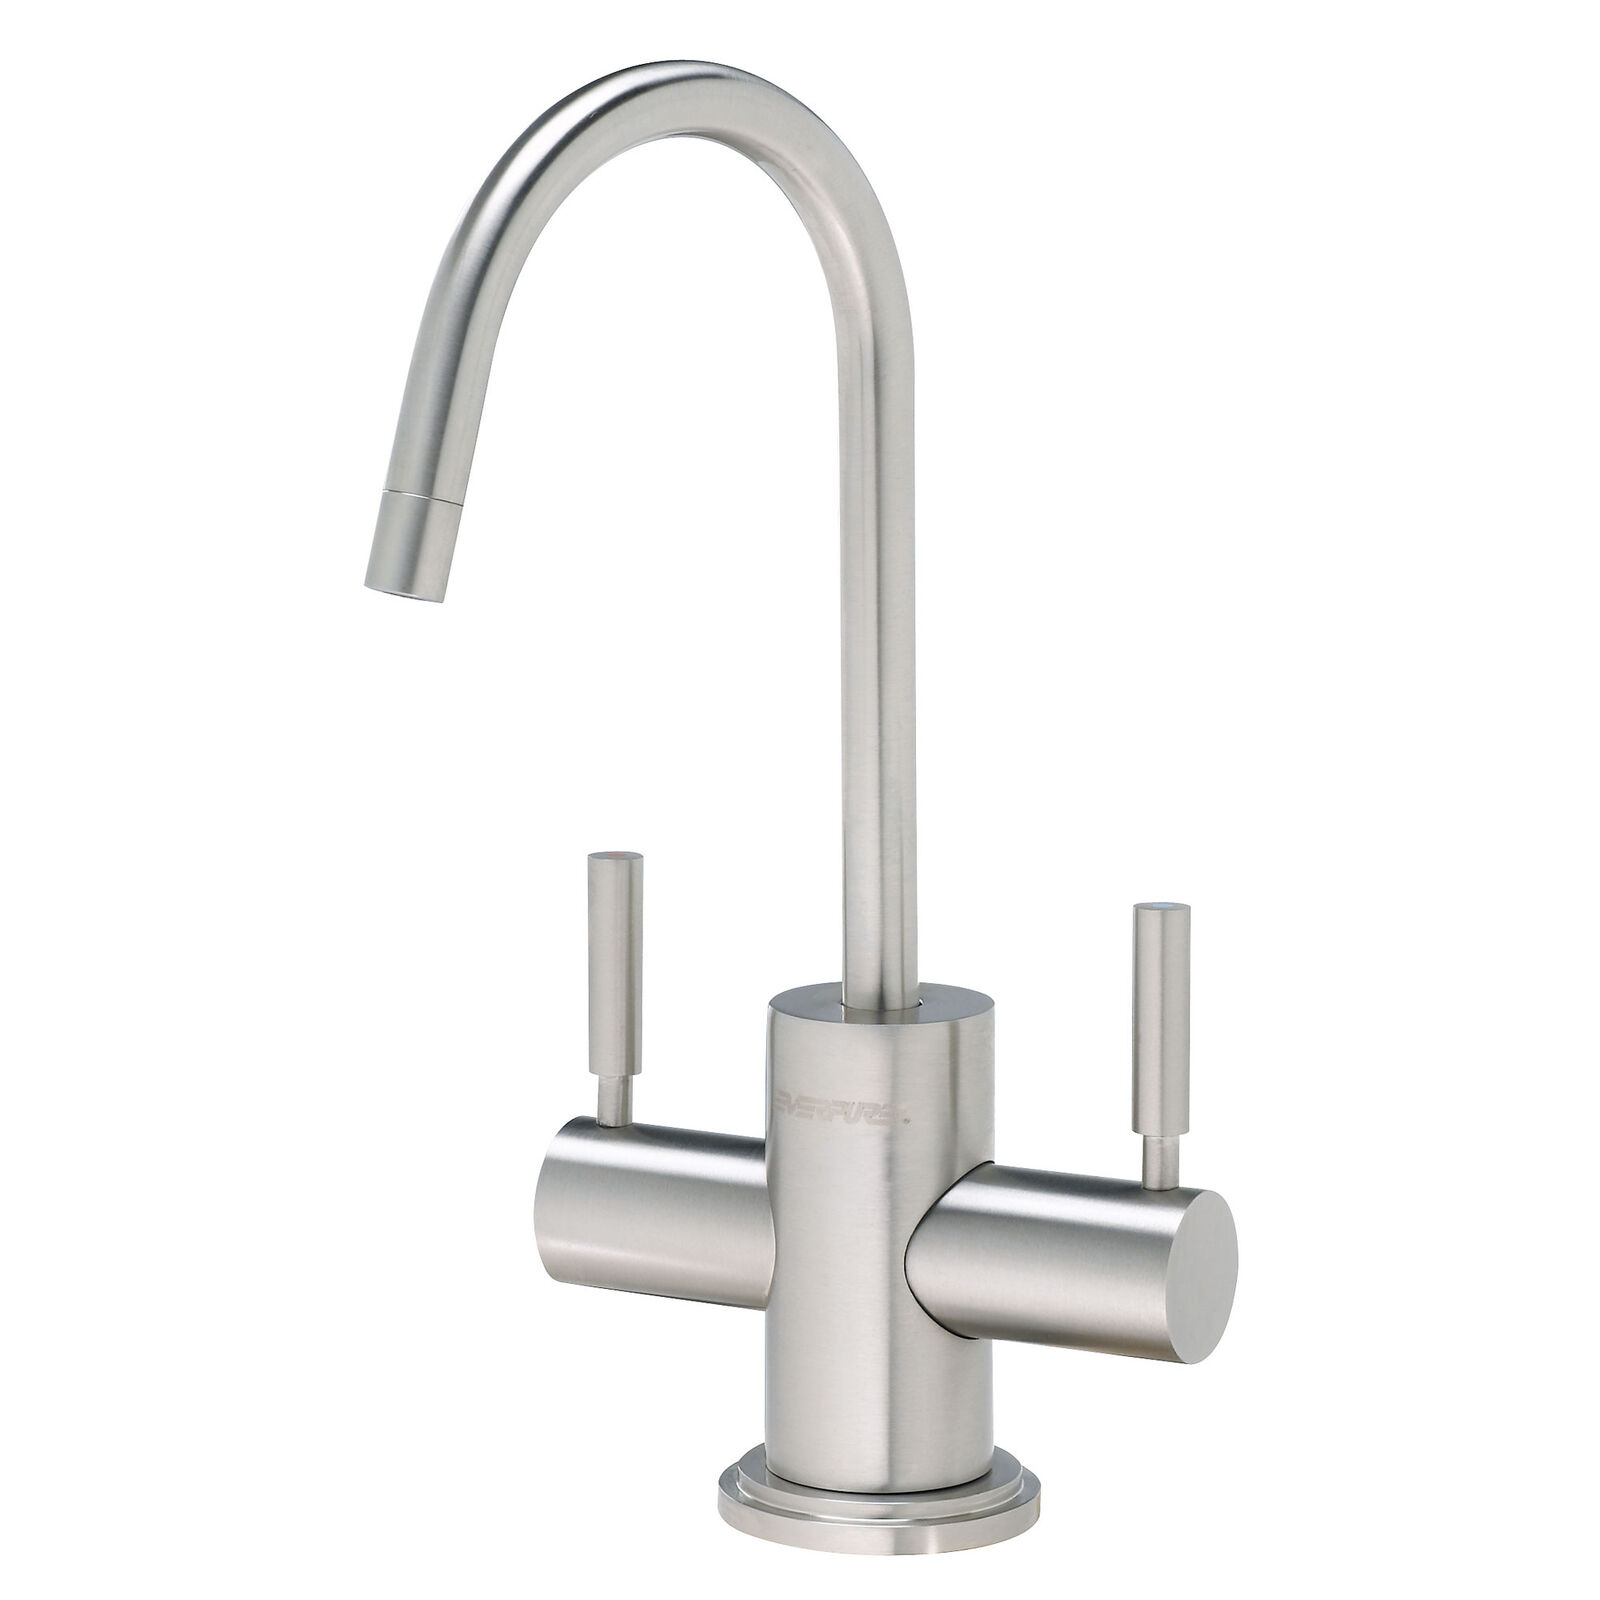 Pentair Everpure 2 Double Handle Kitchen Sink Filtration Faucet, Stainless Steel